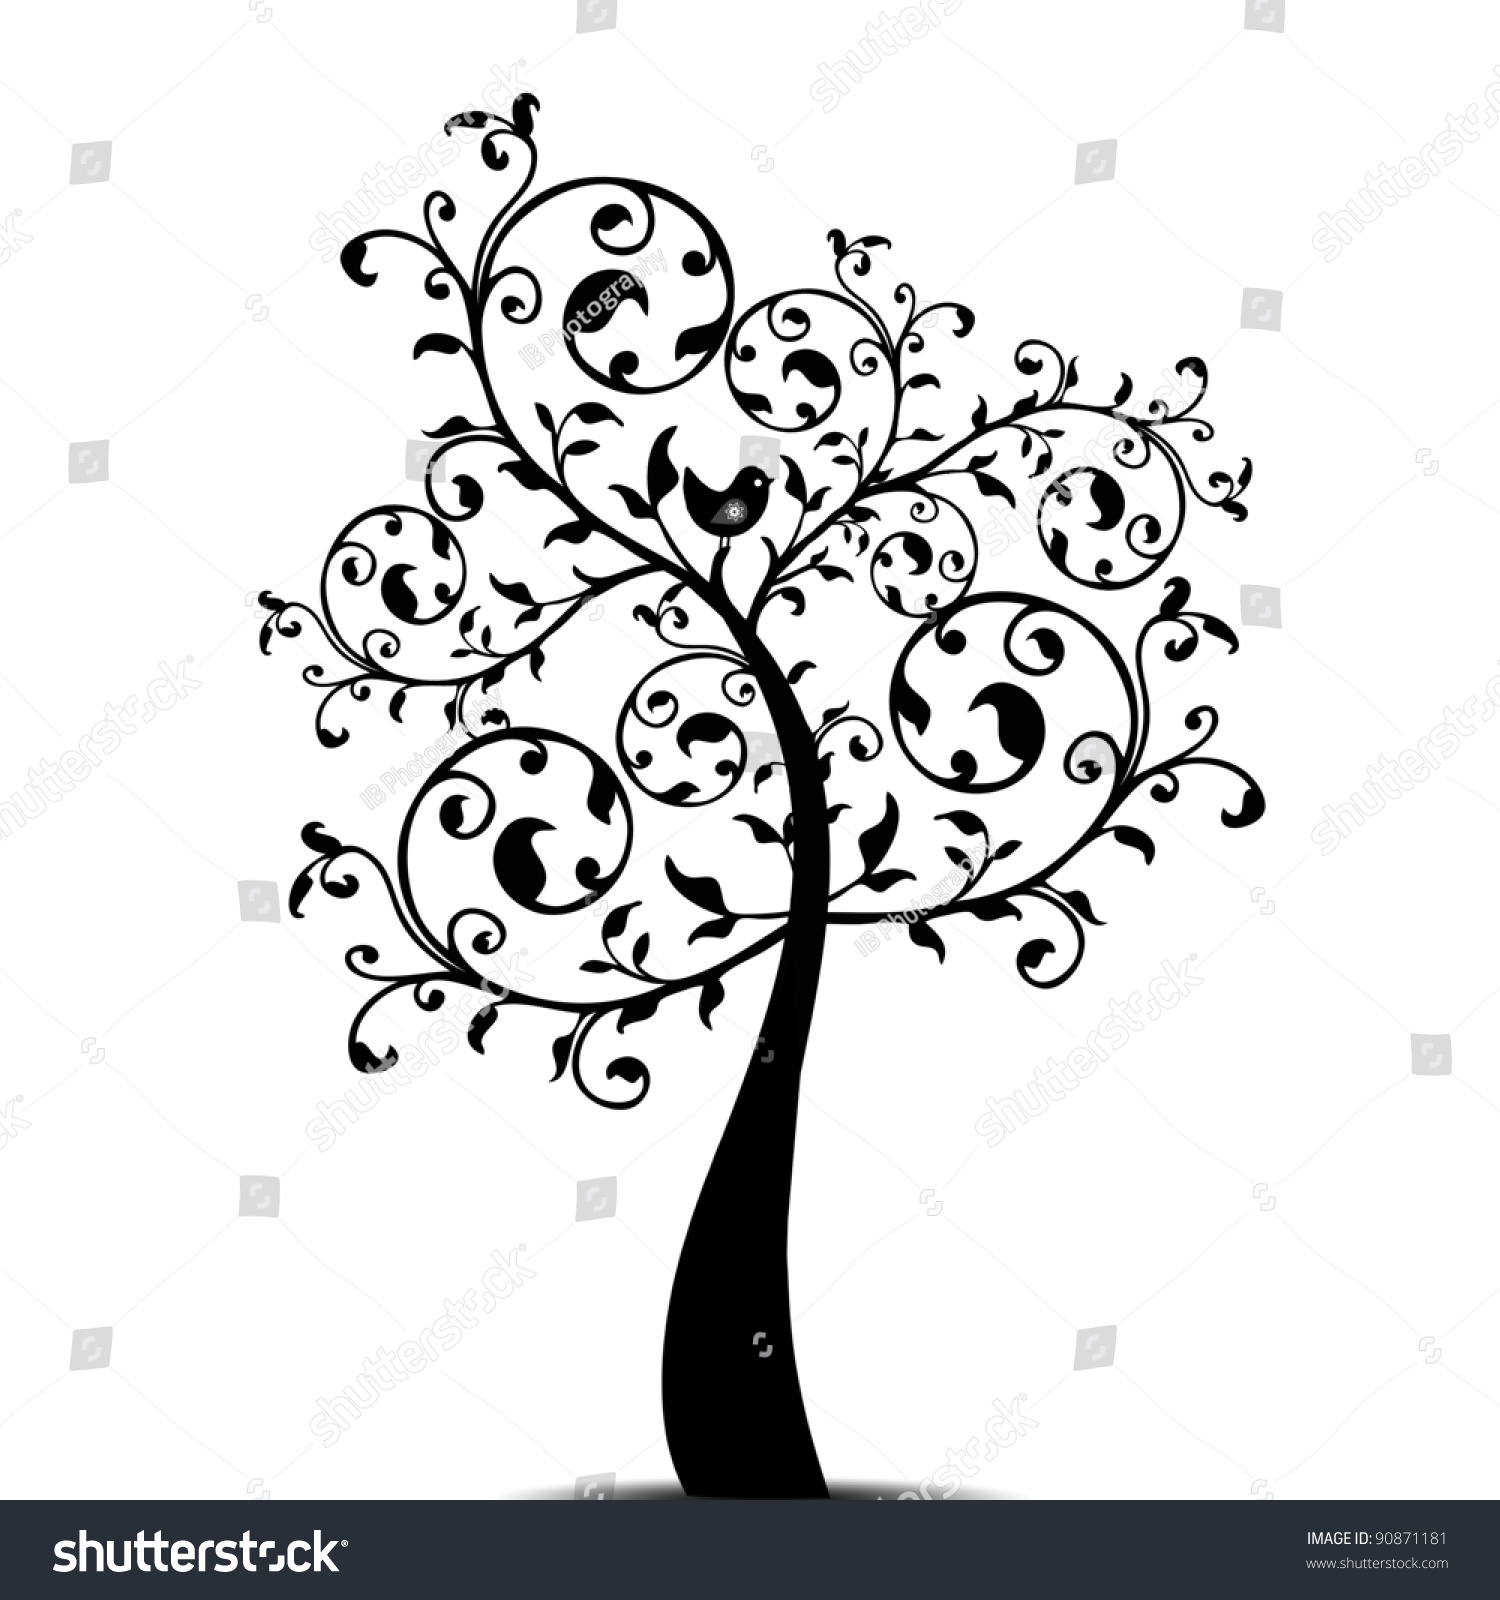 Beautiful art tree isolated on white stock vector 90871181 for Beautiful drawings of trees